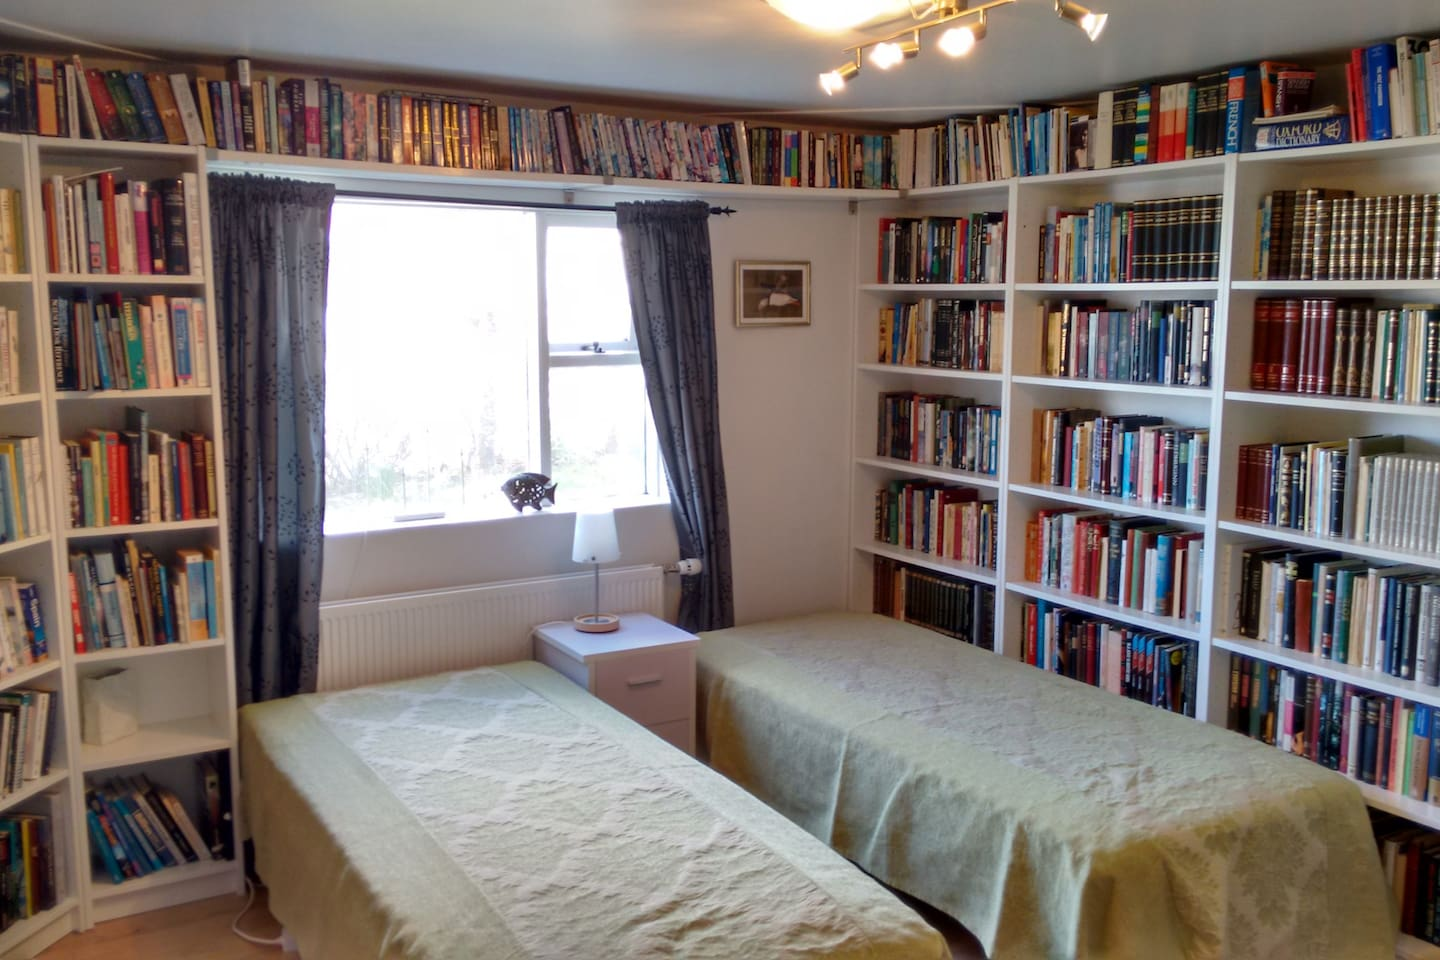 Bedroom with a lot's of books